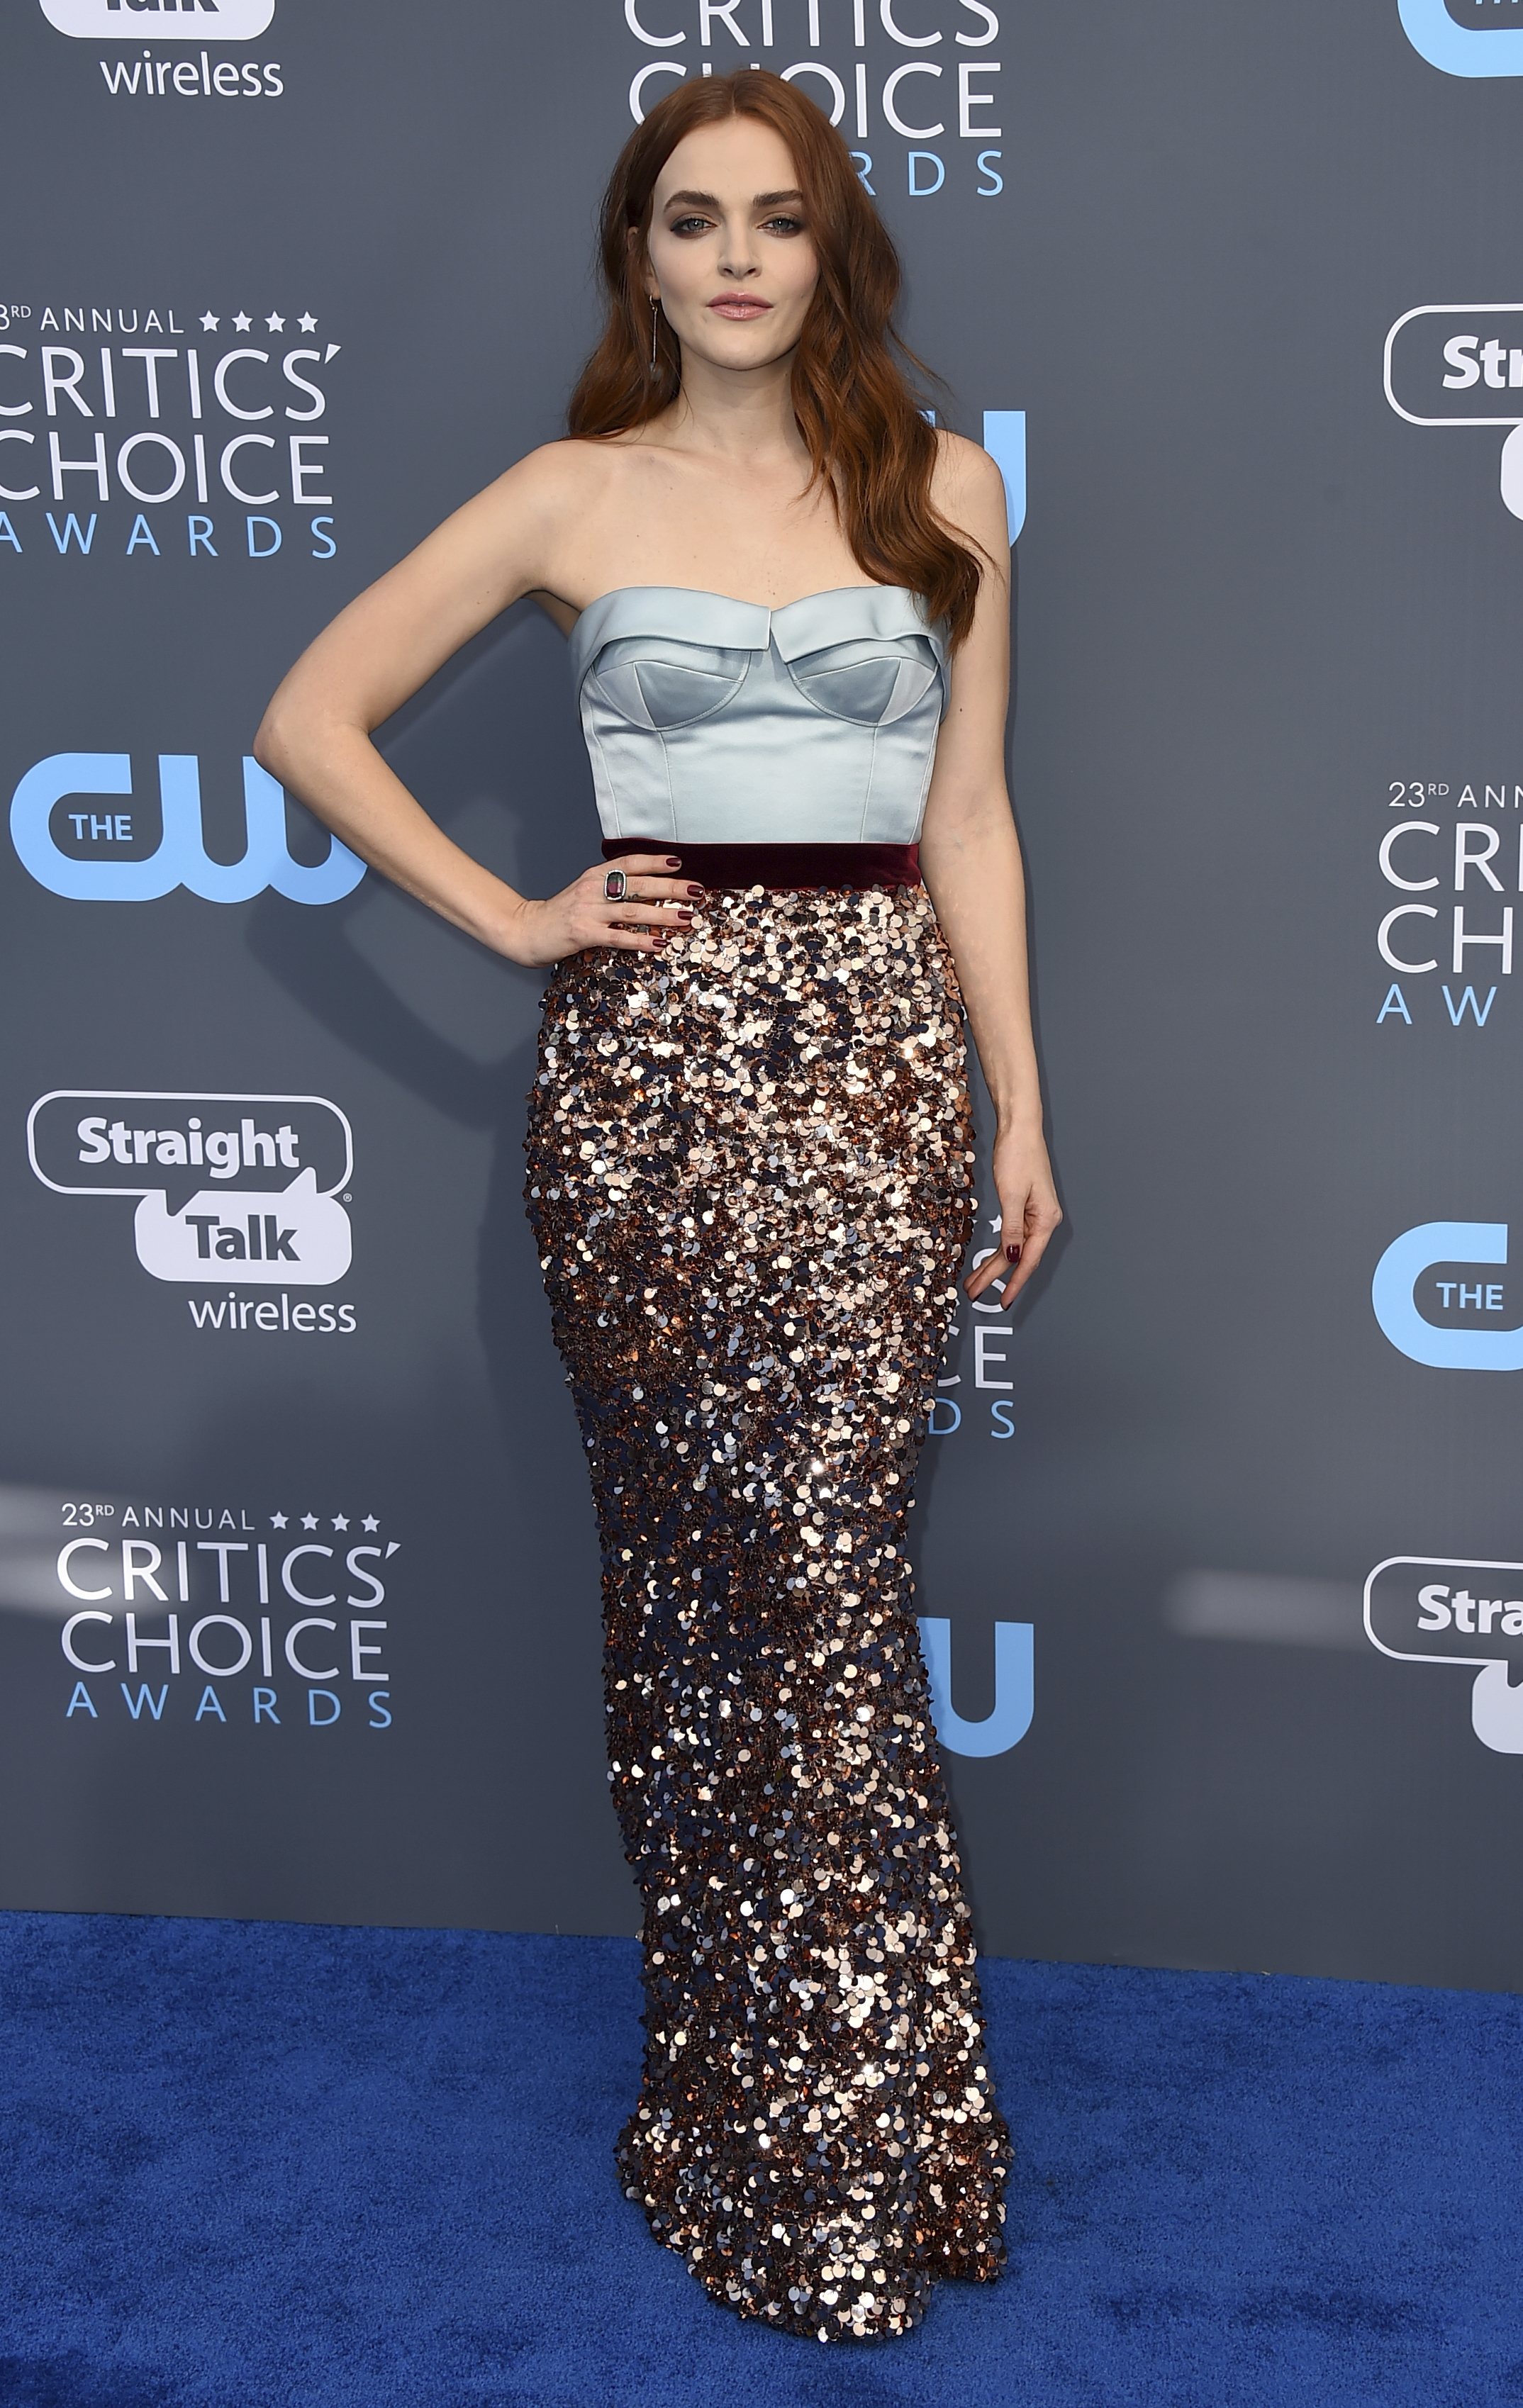 <div class='meta'><div class='origin-logo' data-origin='AP'></div><span class='caption-text' data-credit='Jordan Strauss/Invision/AP'>Madeline Brewer arrives at the 23rd annual Critics' Choice Awards at the Barker Hangar on Thursday, Jan. 11, 2018, in Santa Monica, Calif.</span></div>